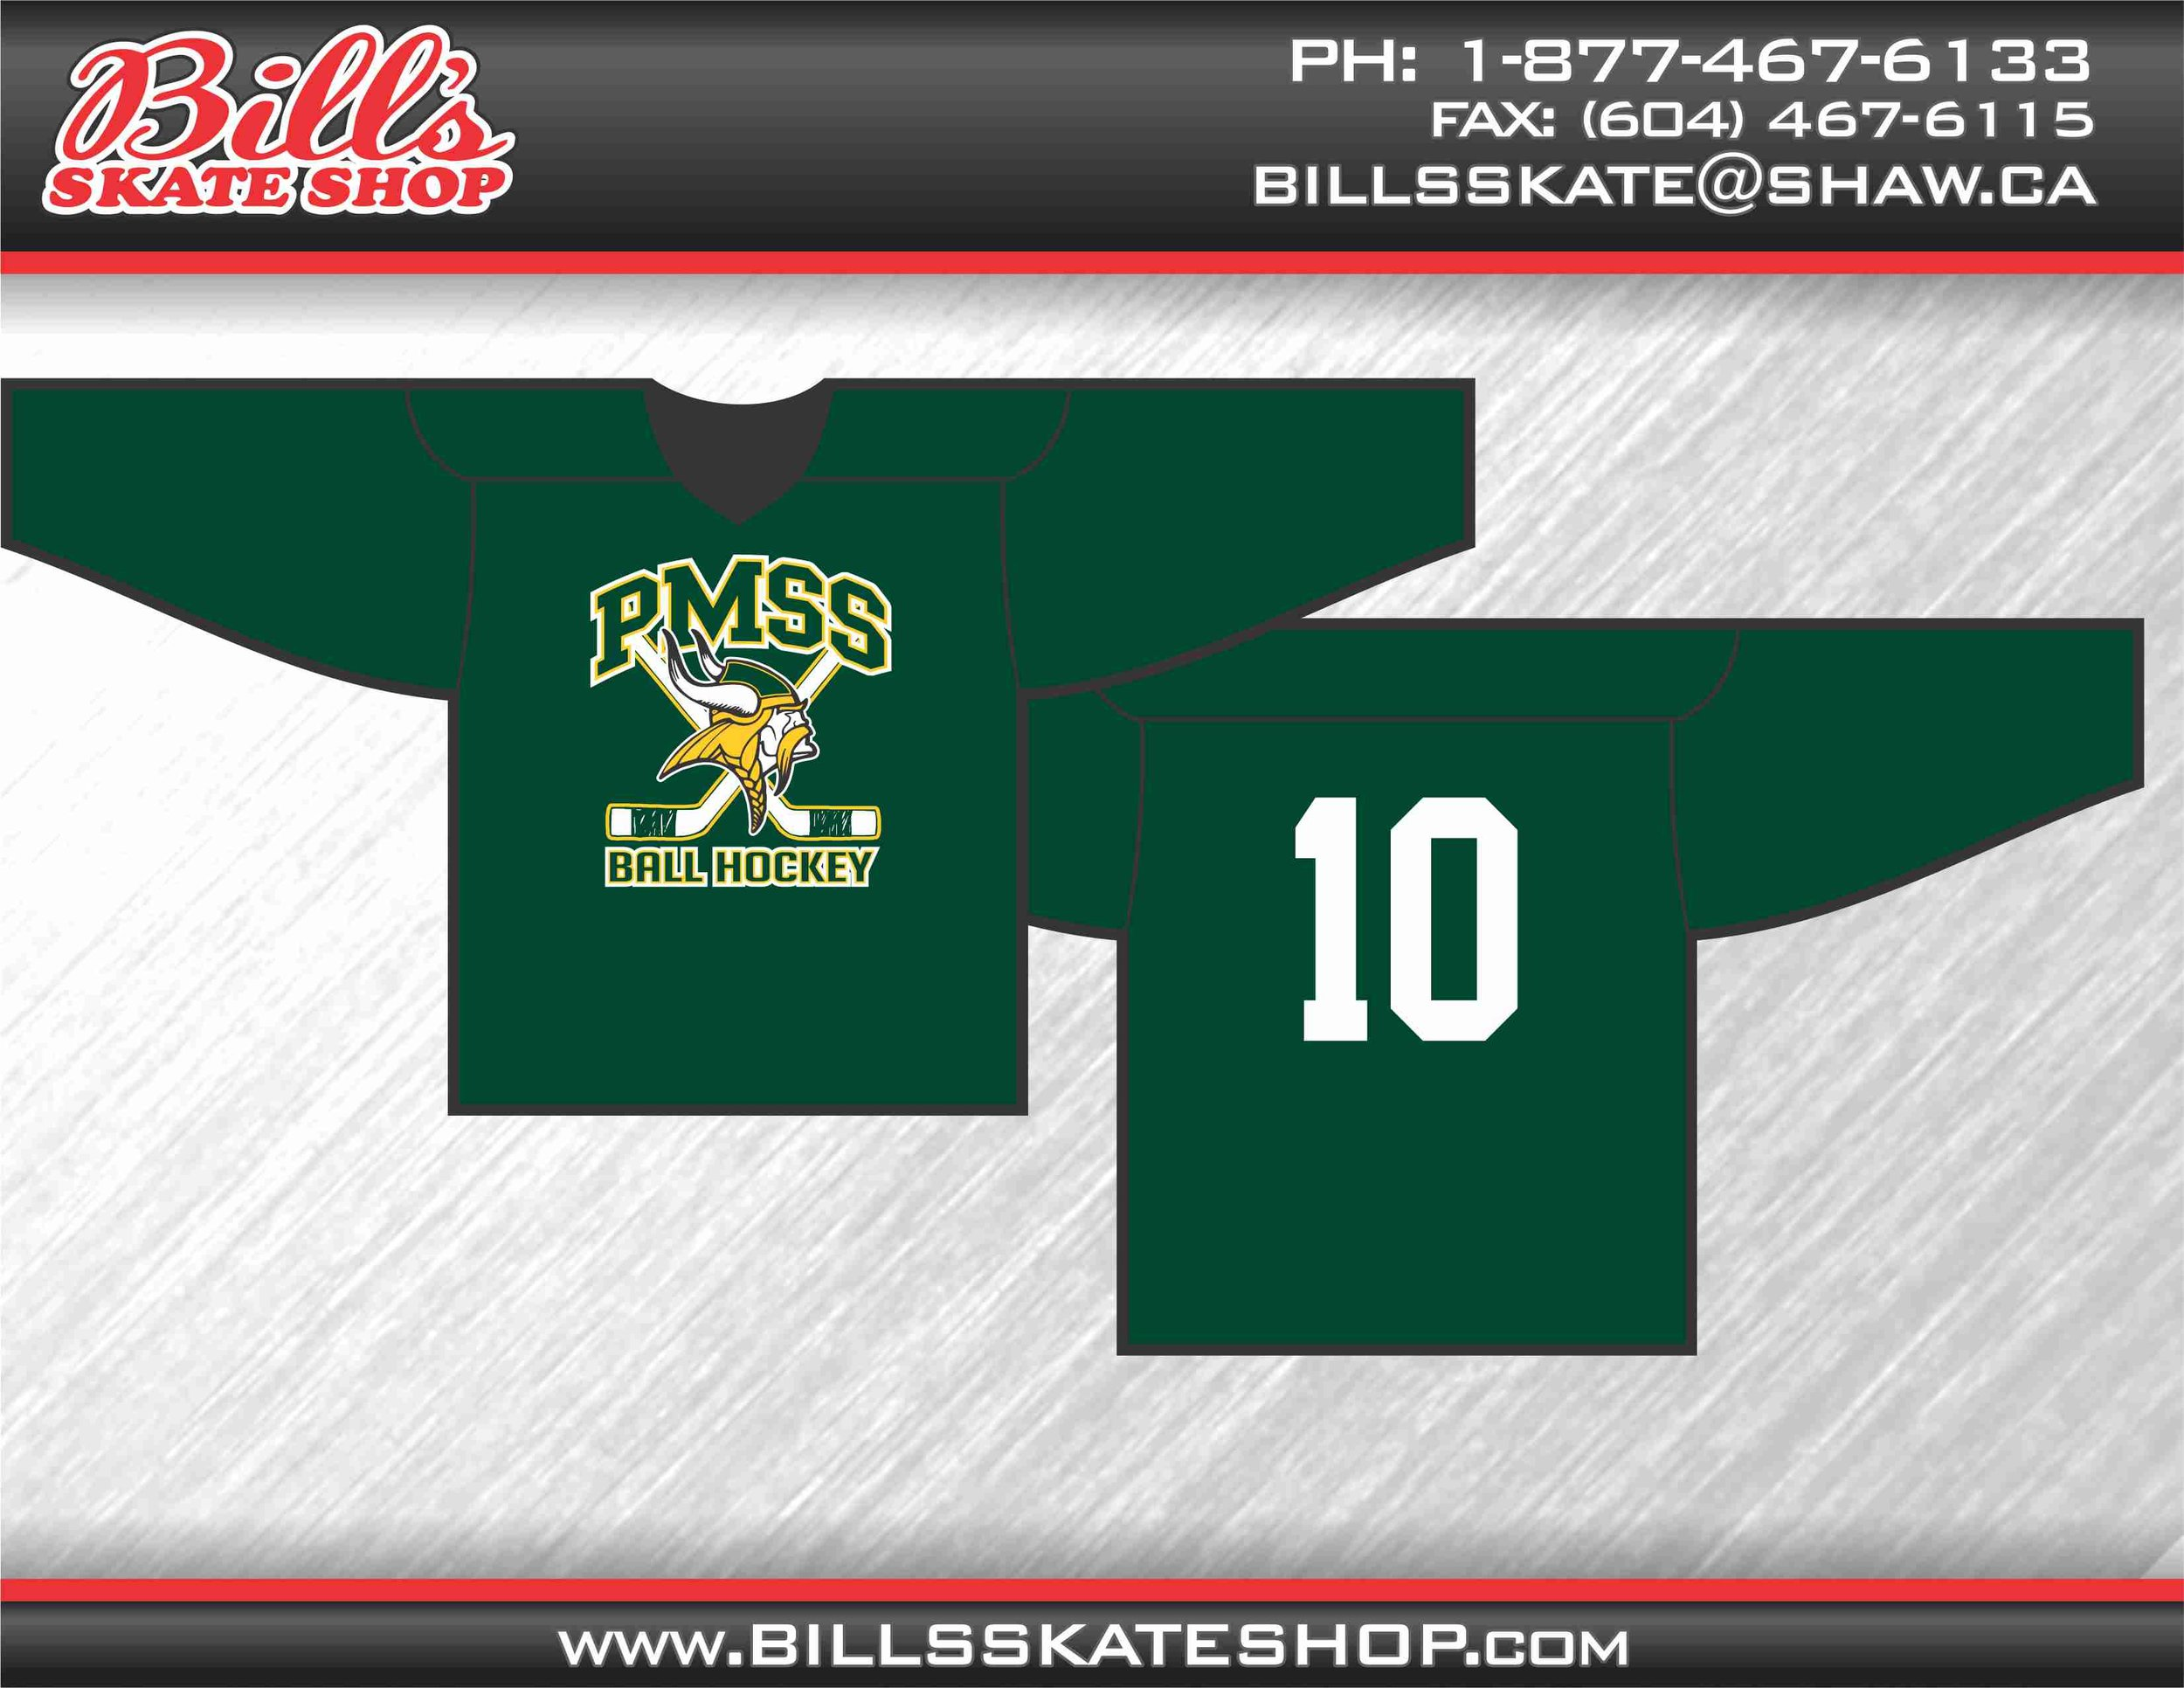 PMSS Ball Hockey Jersey.jpg